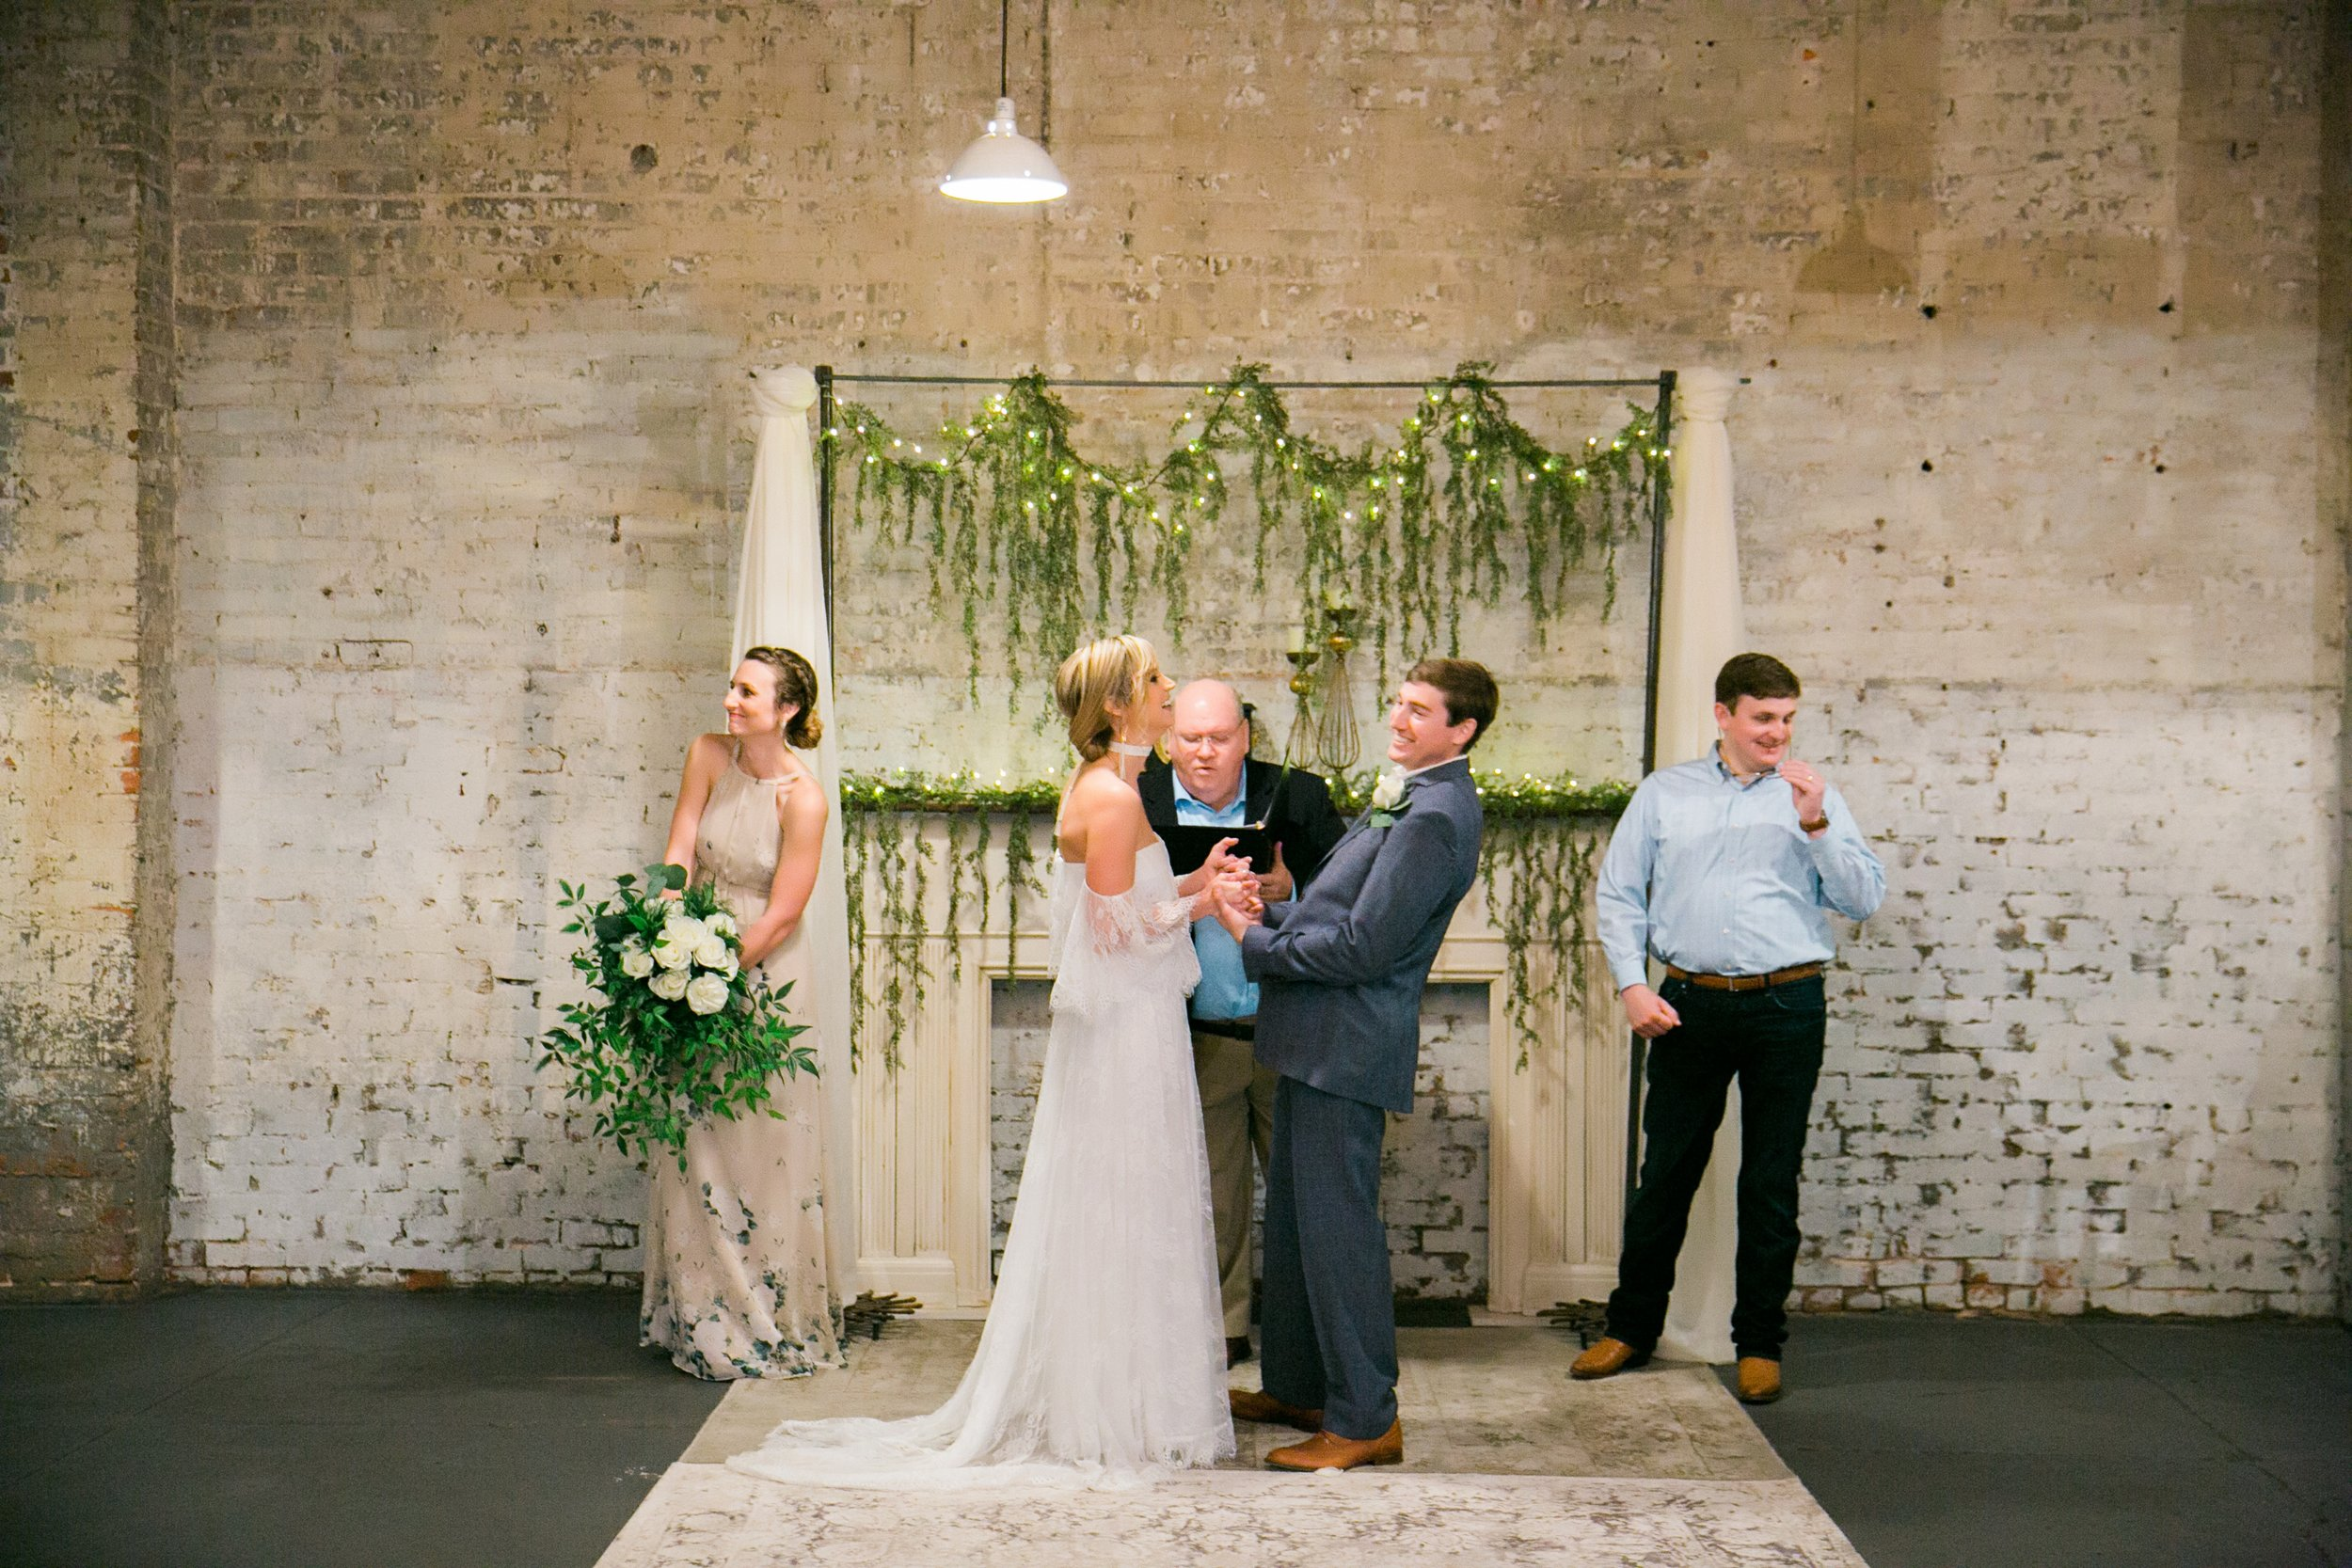 Magan-Landon-Surprise-wedding-at-southern-jeweled-warehouse-wichita-falls-texas-lauren-pinson-053.jpg